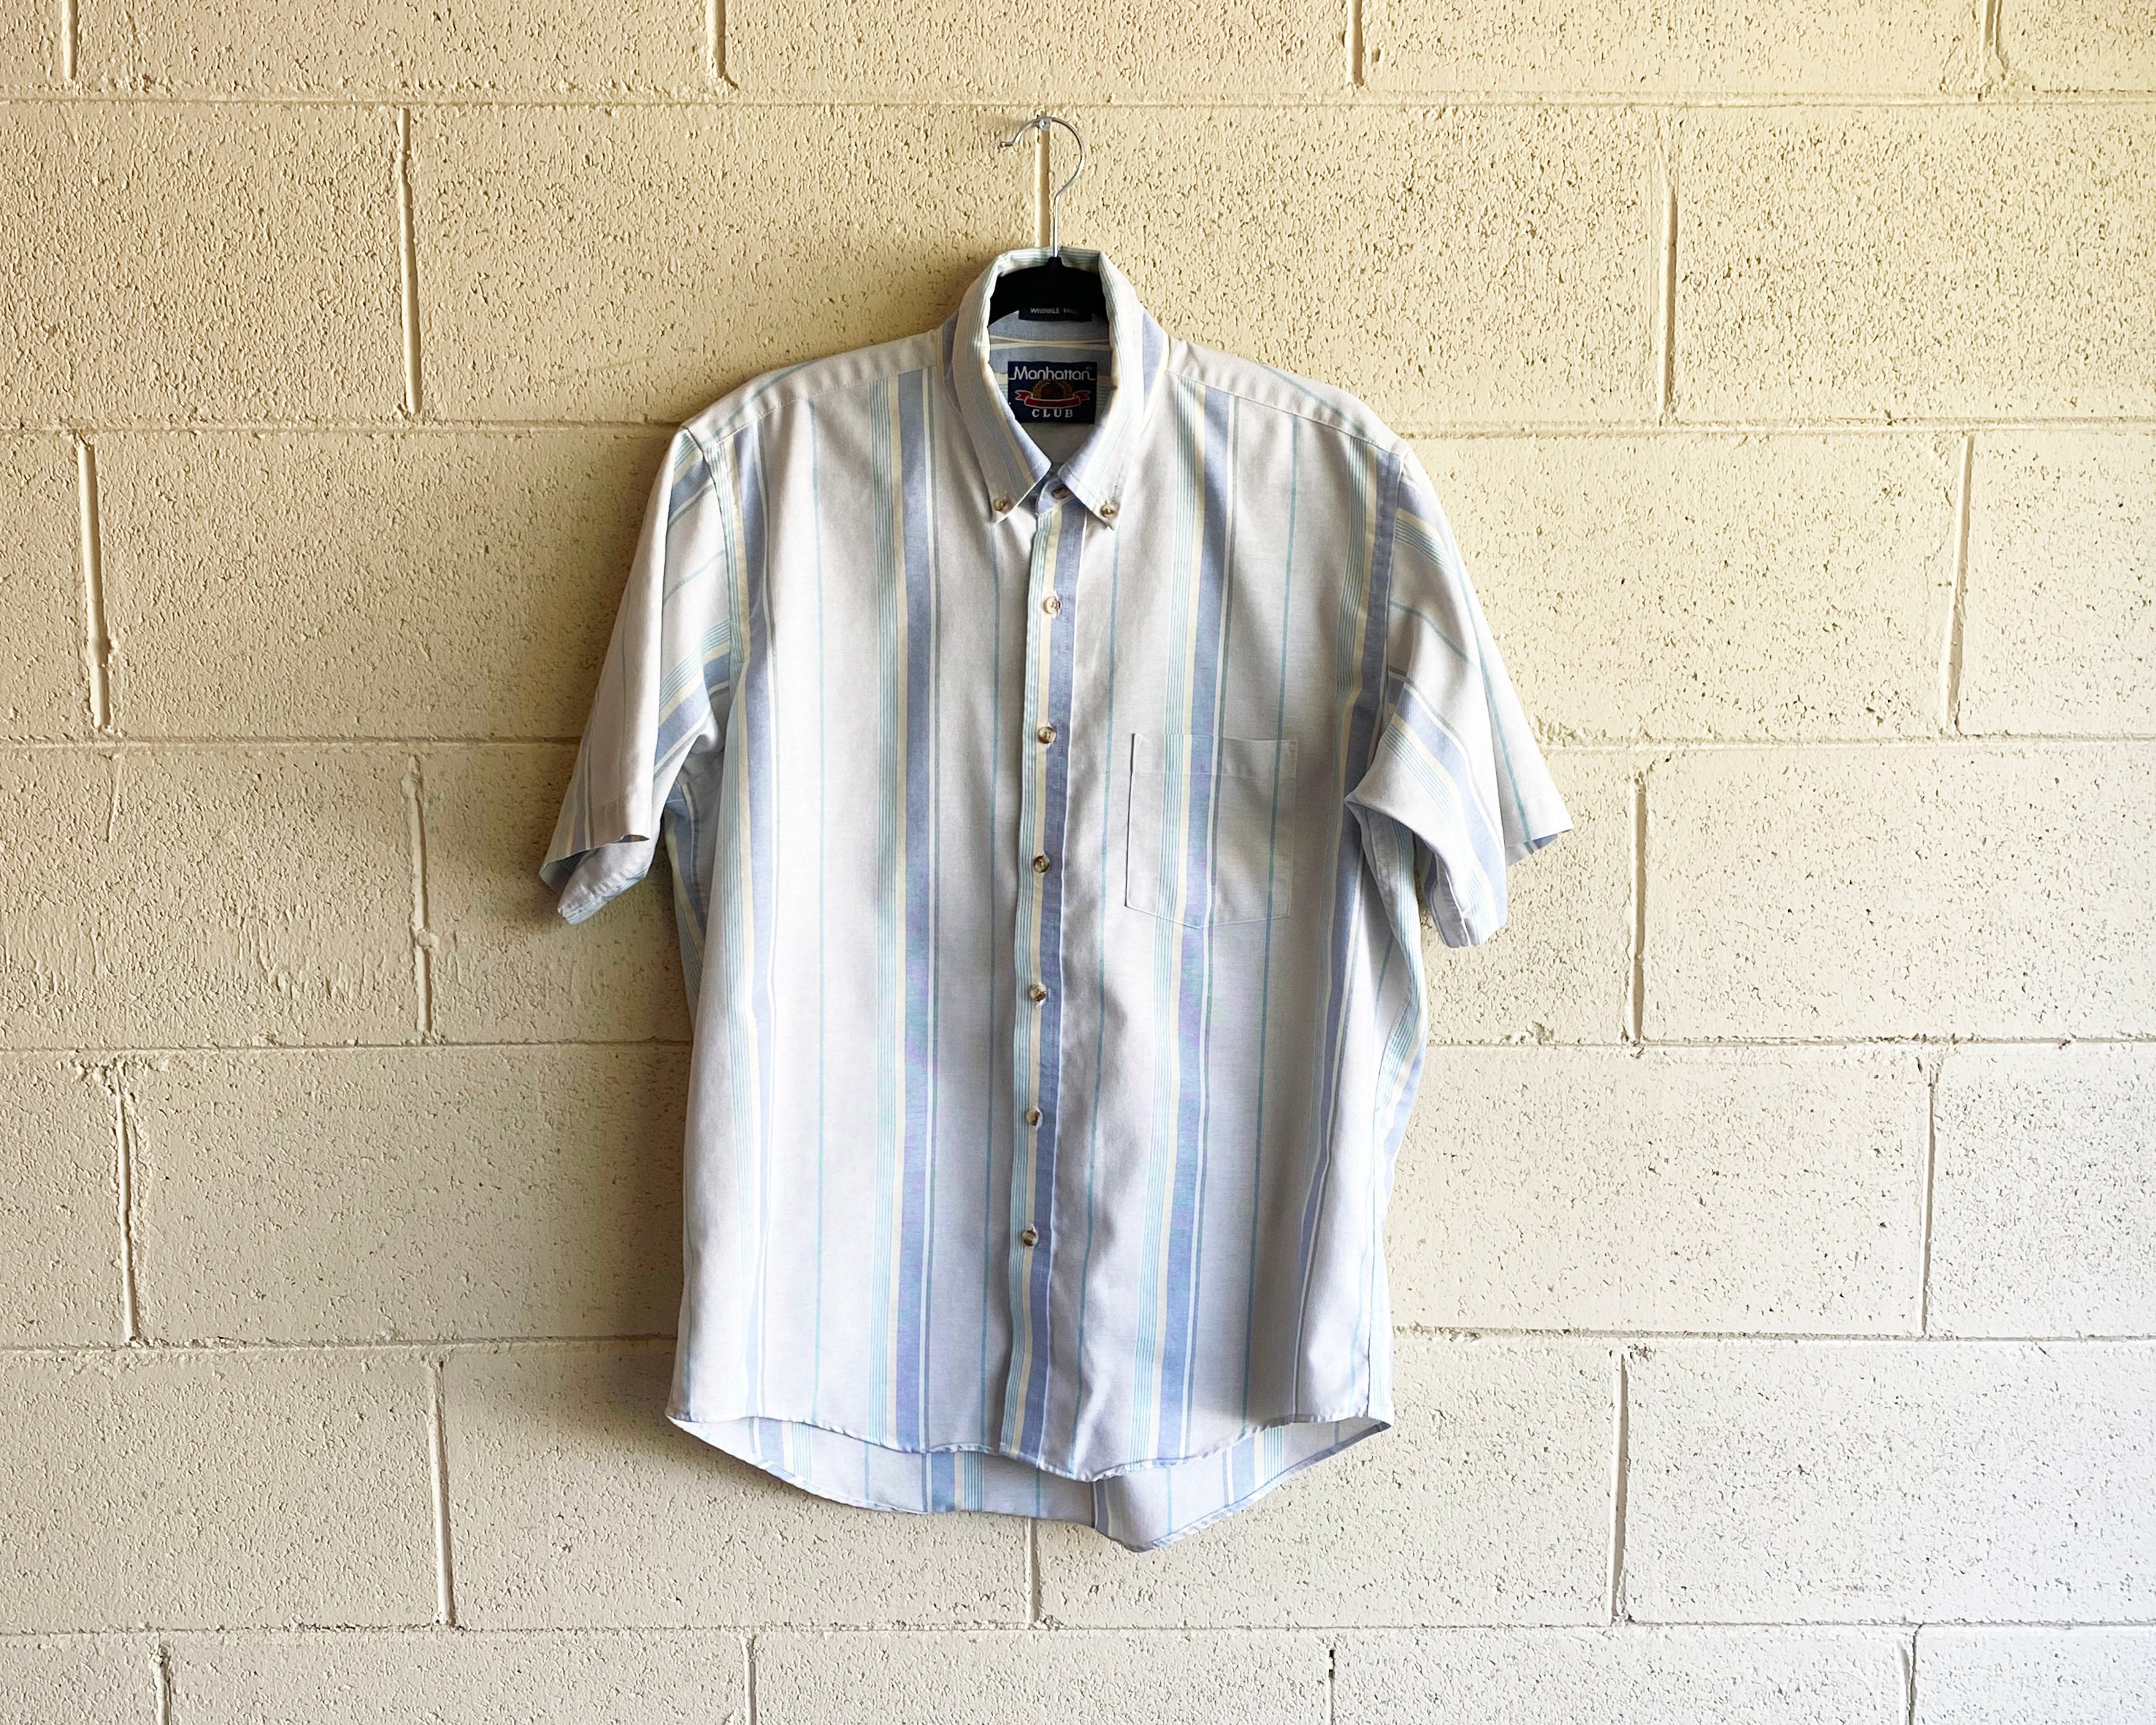 1970s Mens Shirt Styles – Vintage 70s Shirts for Guys 80S Mens Button Down  Vintage Short Sleeve Shirt 1970S Summer Clothing $5.00 AT vintagedancer.com